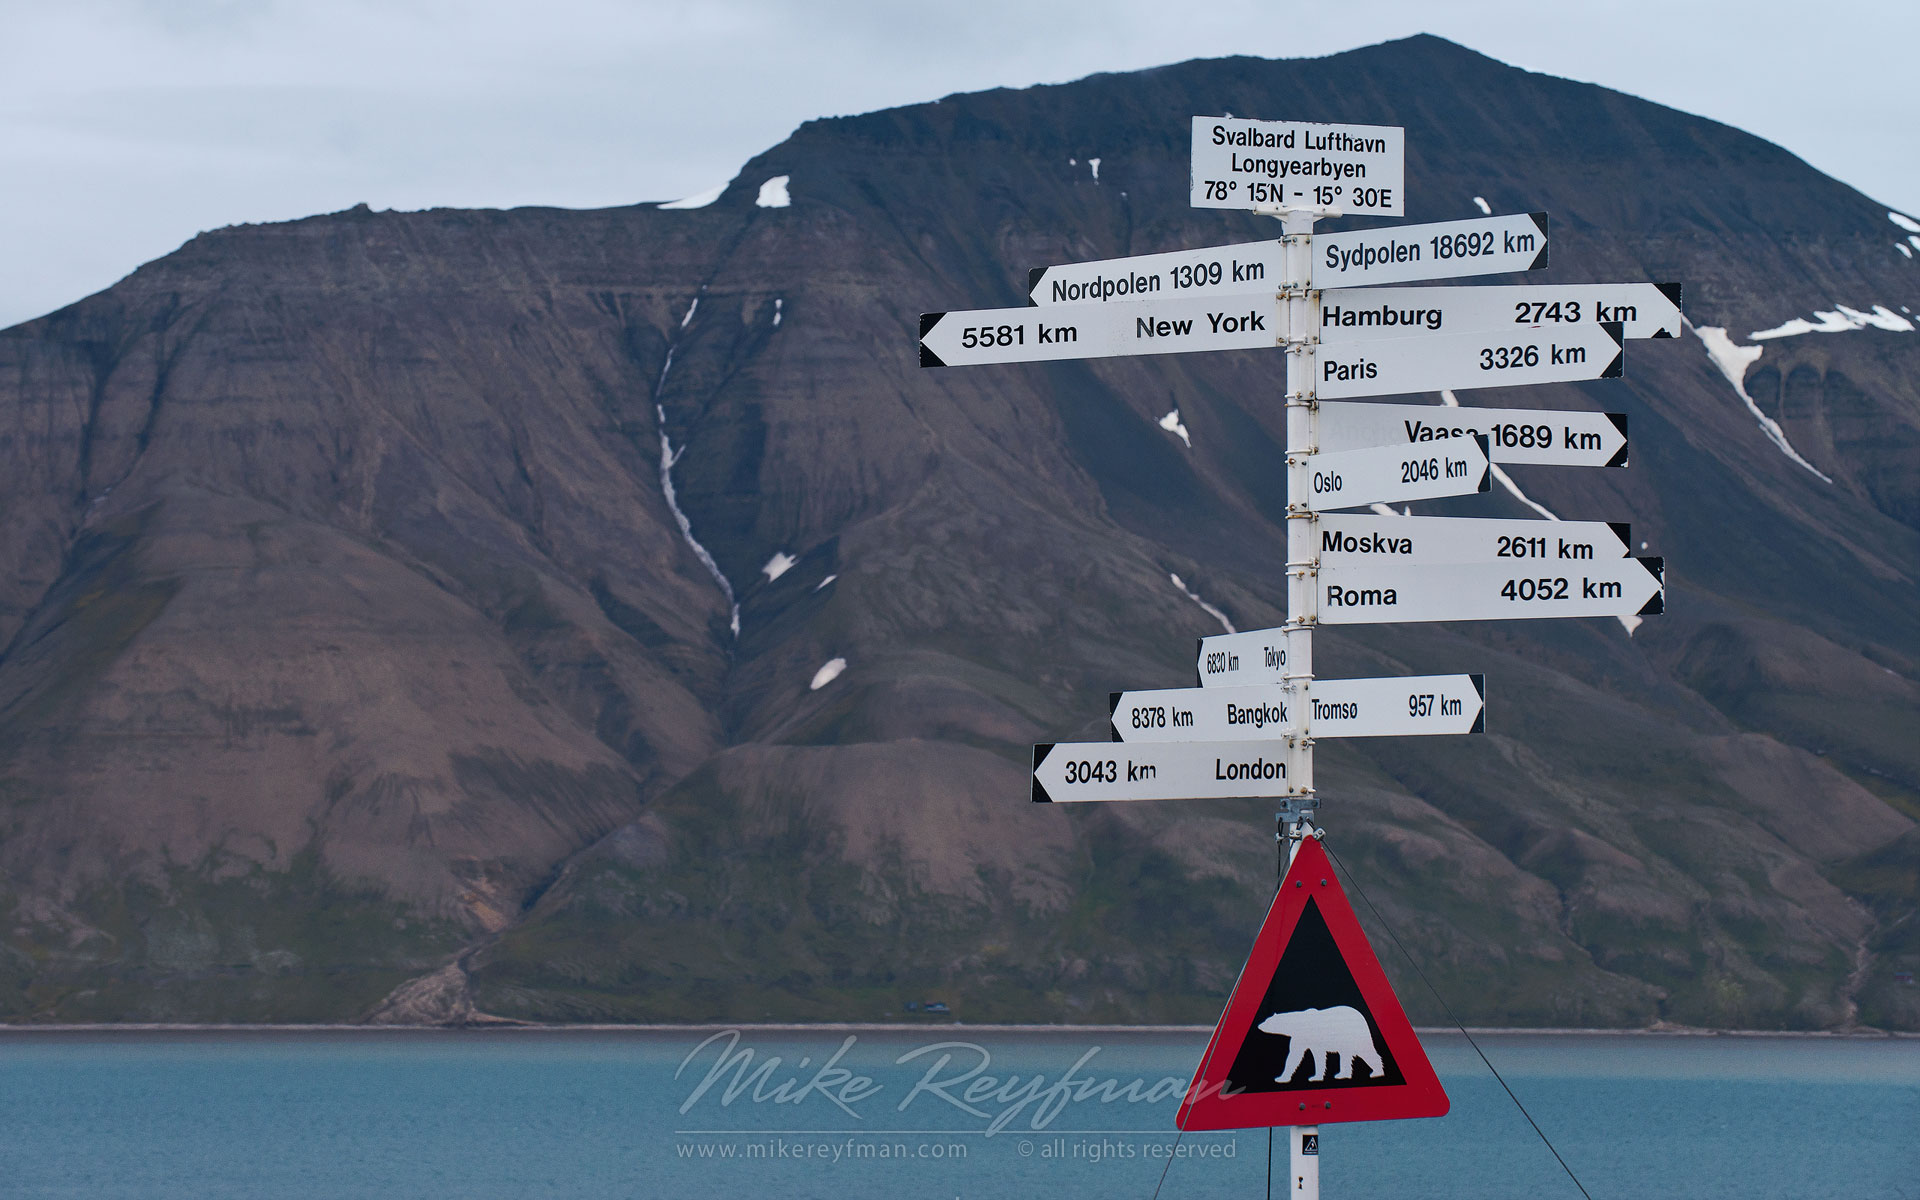 Polar Bear road sign ?nd signposts to destinations around the world at Svalbard Airport. Longyearbyen, Svalbard (Spitsbergen) Archipelago, Norway. - Arctic-Landscape-Svalbard-Spitsbergen-Norway - Mike Reyfman Photography